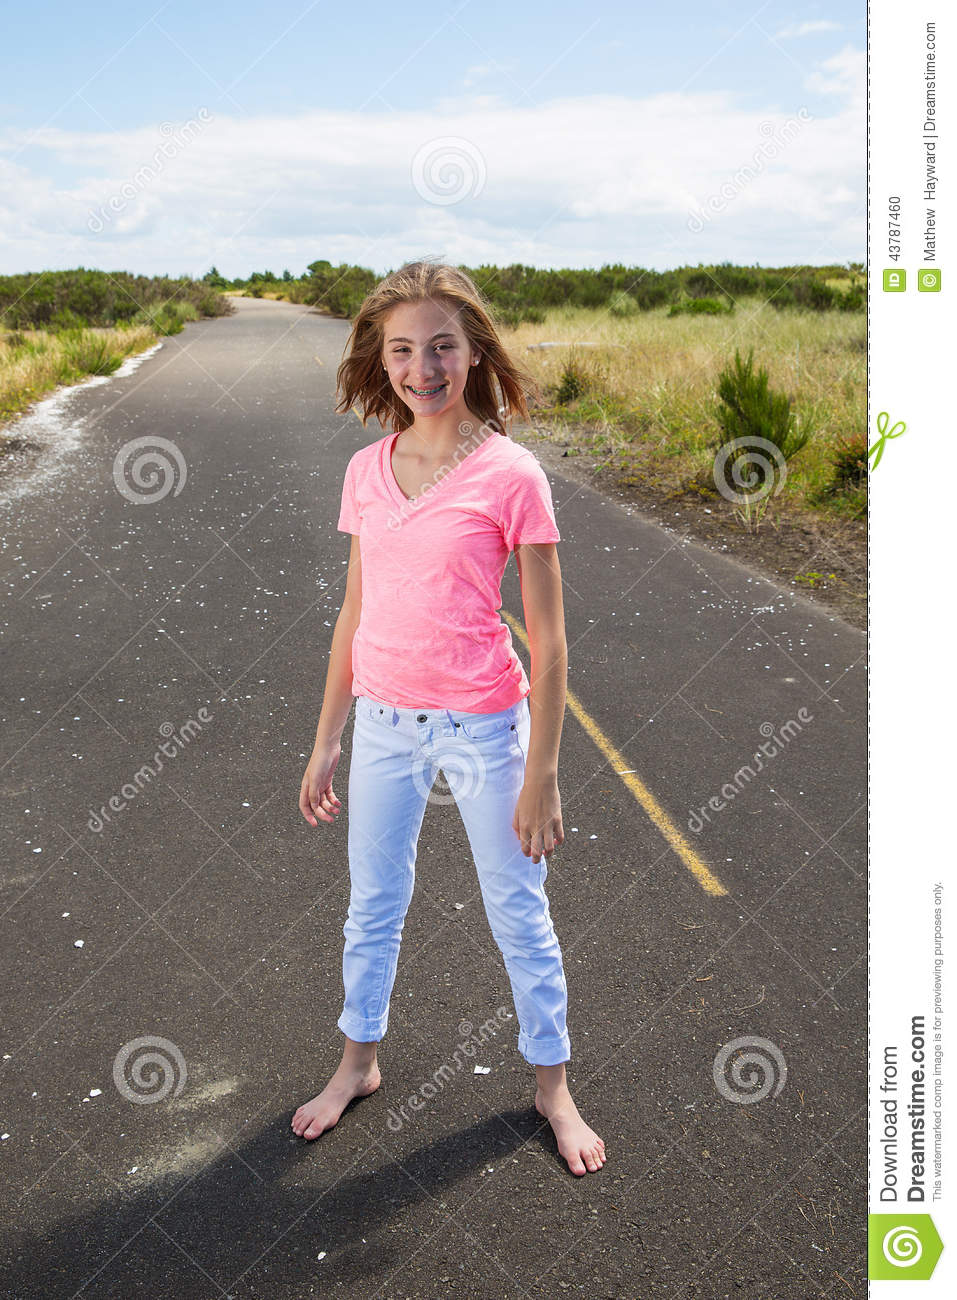 https://thumbs.dreamstime.com/z/teenage-girl-travels-barefoot-empty-road-pretty-teen-walking-country-bare-feet-43787460.jpg